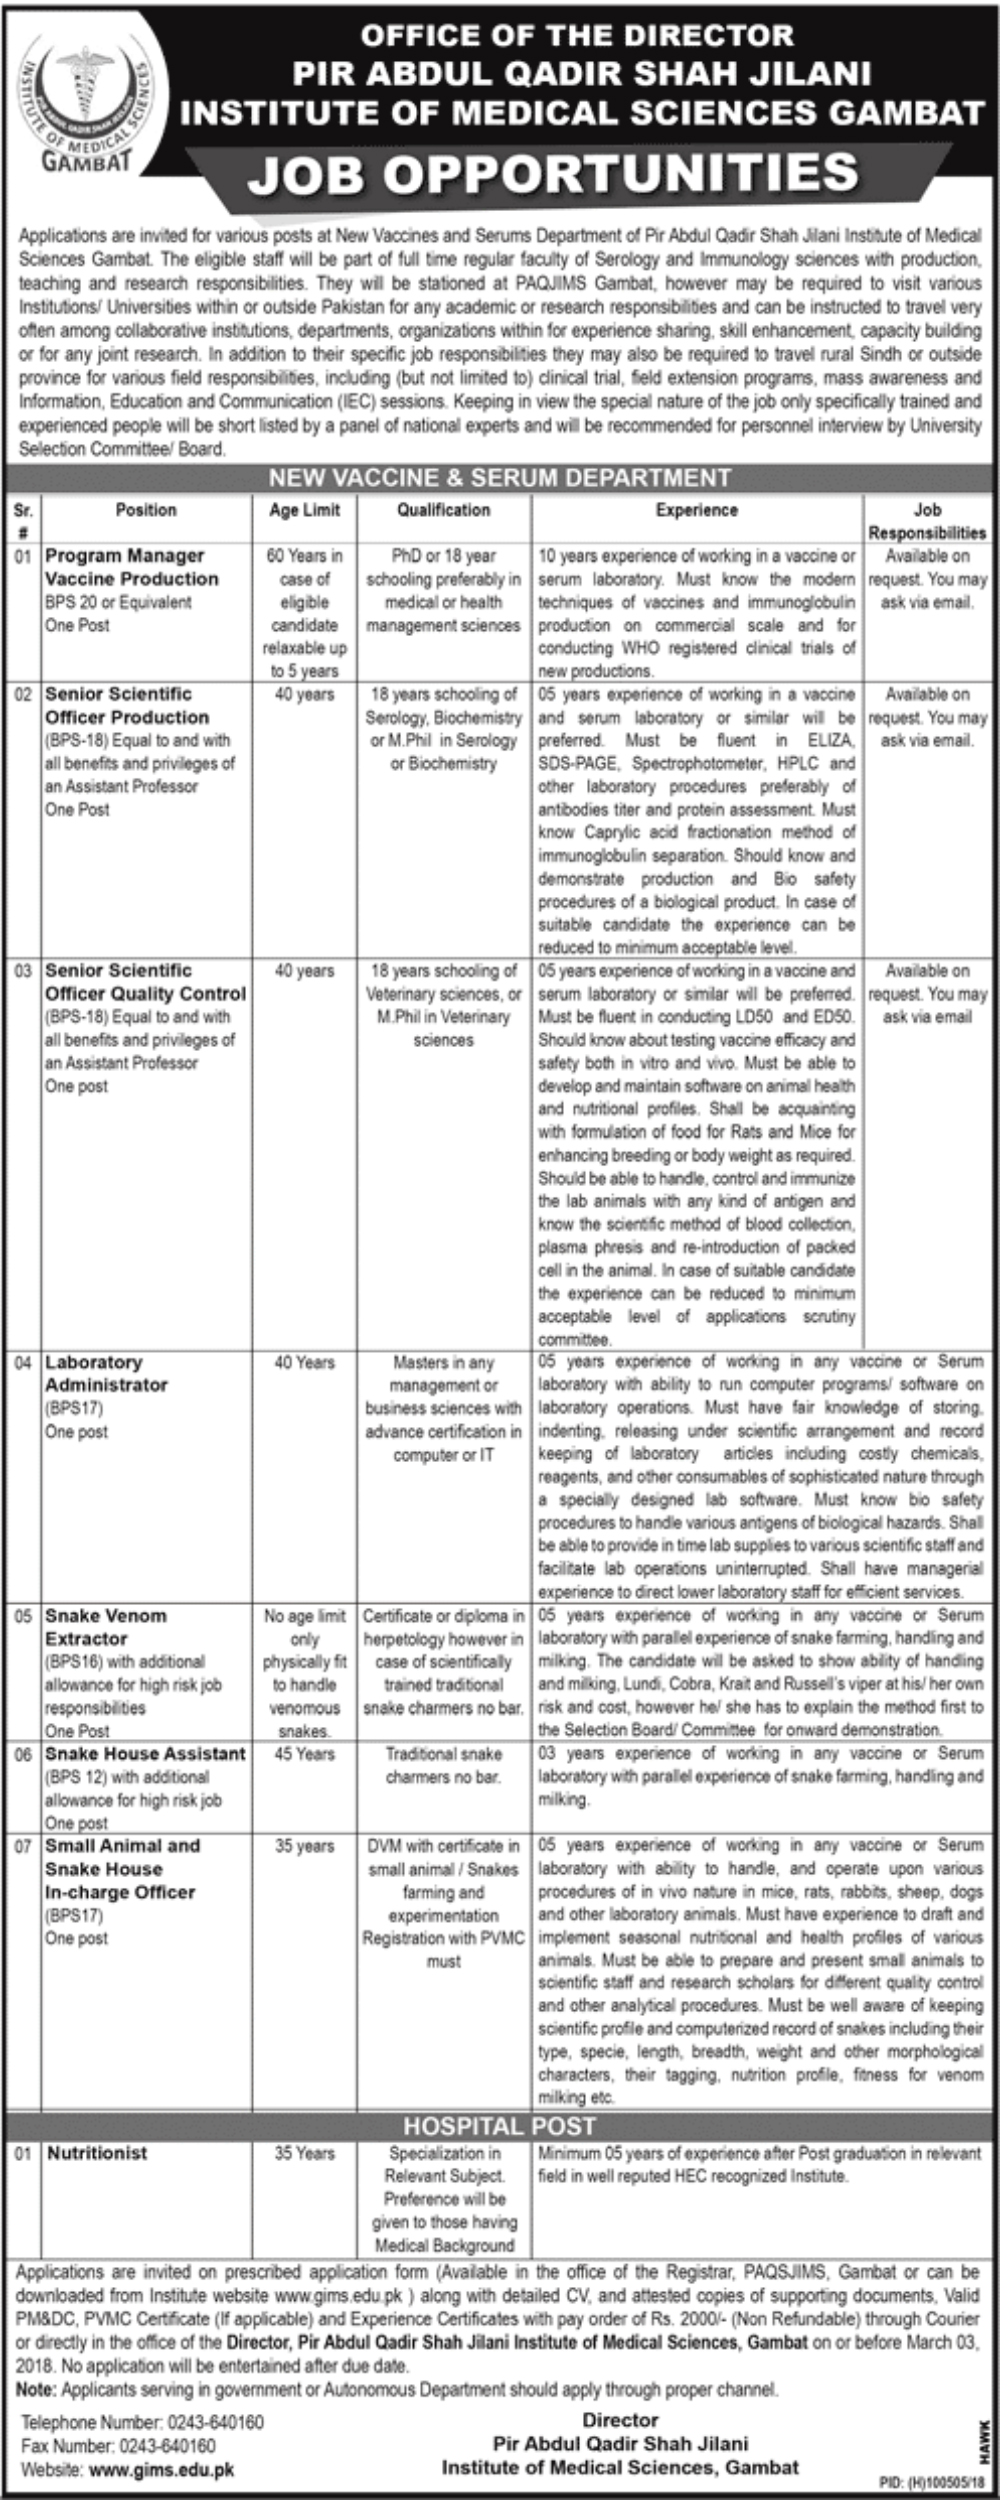 Institute of Medical Sciences GAMBAT New Jobs 17th February 2018 in Daily Jang Newspaper